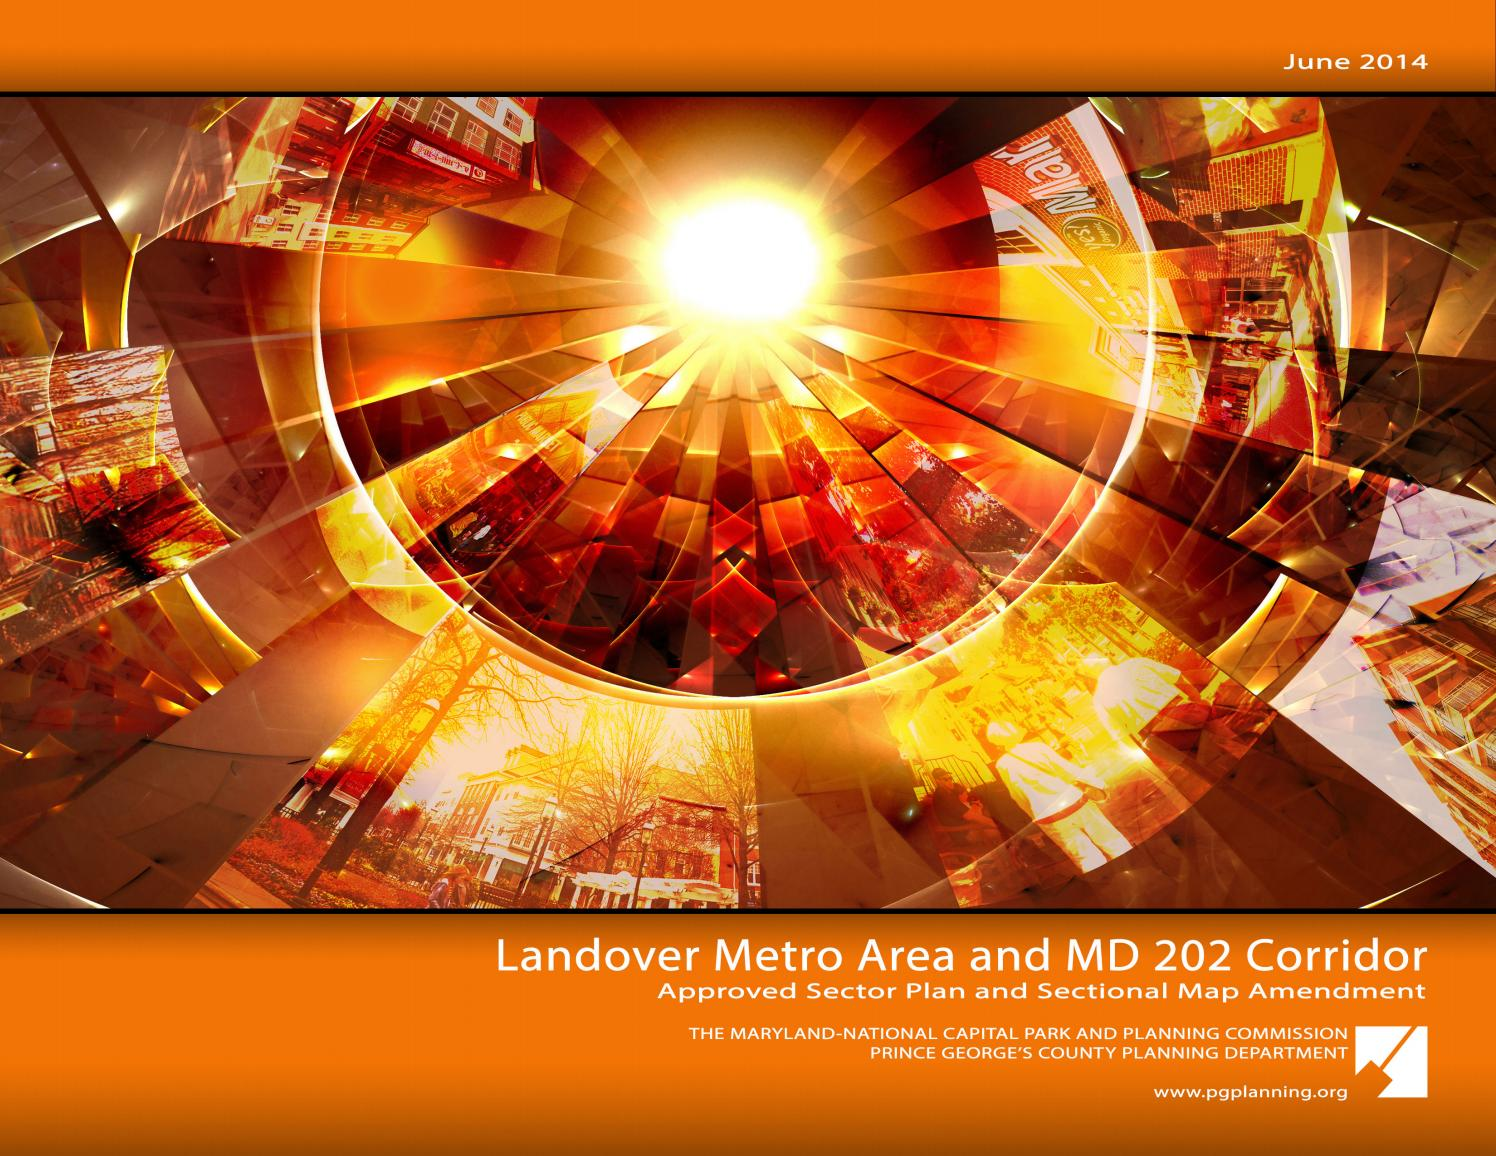 Landover Metro Area and MD 202 Corridor Approved Sector Plan ... on solar energy production map, german resource map, gas production map, petroleum production map, organic production map, food production map, wind energy production map, chemical production map,